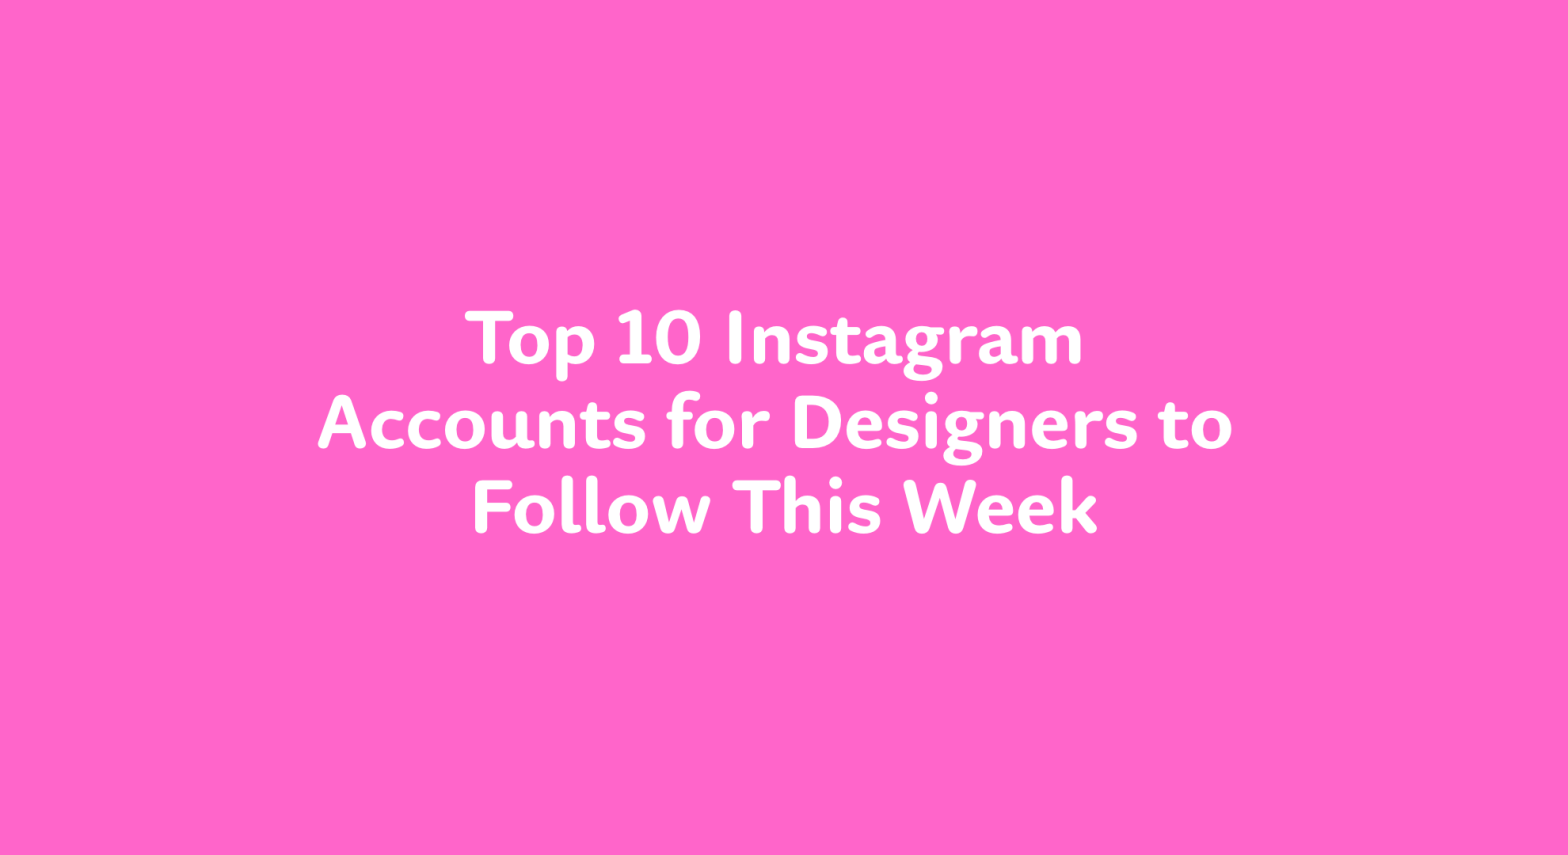 Thumbnail for Top 10 Instagram Accounts for Designers to Follow This Week